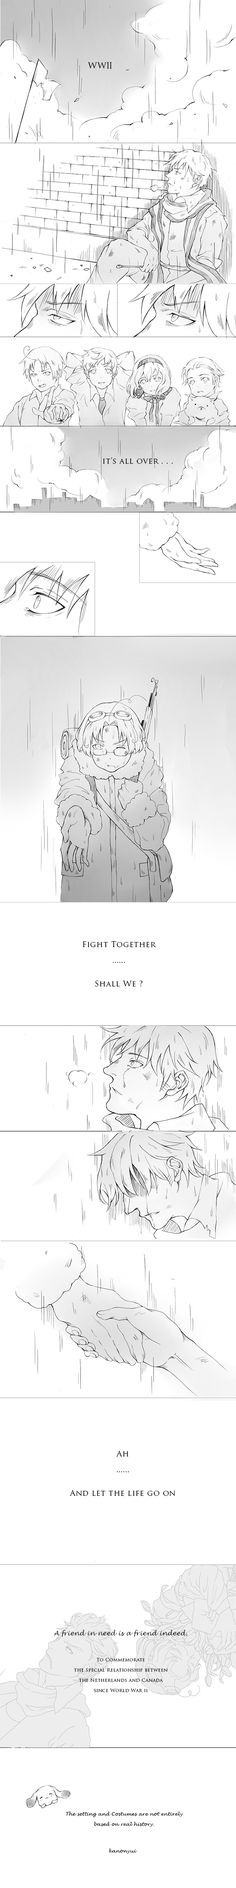 Life Goes On 1/2 (nedcan Hetalia) by kanonyui.deviantart.com on @deviantART - Willem (head-canon name for Netherlands) and Matthew in WWII.